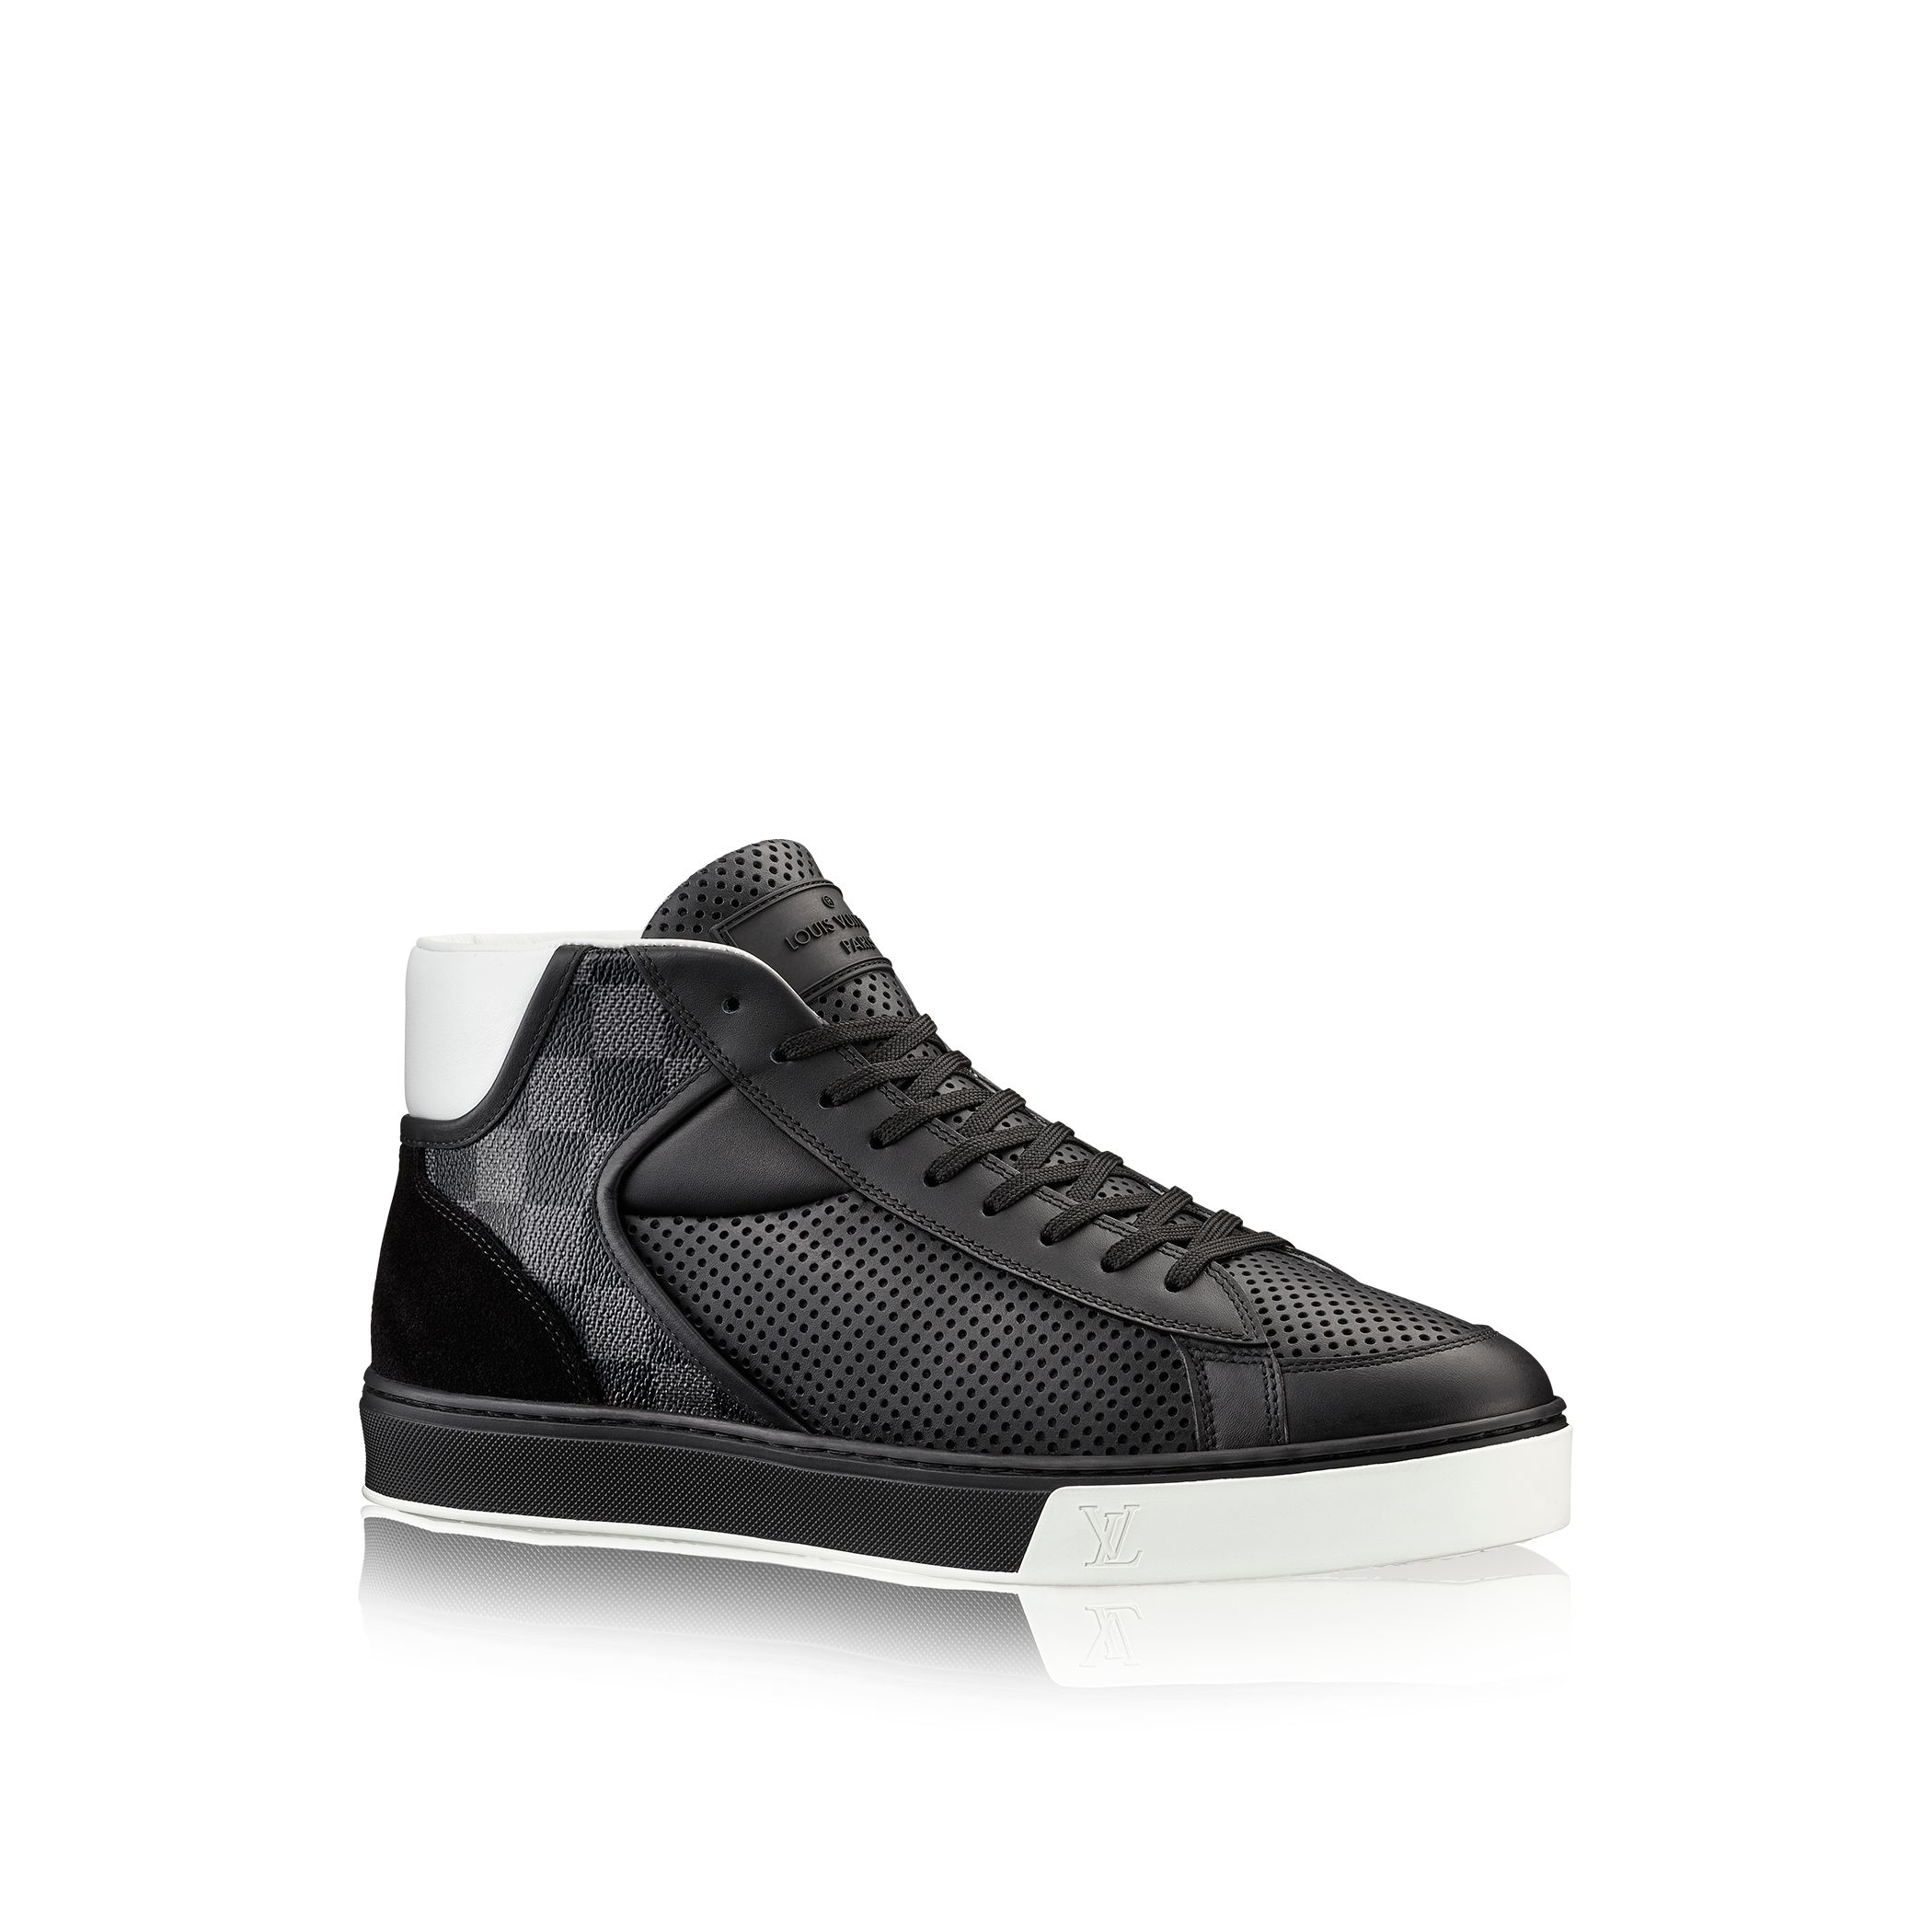 louis vuitton player sneaker boot in gray for lyst